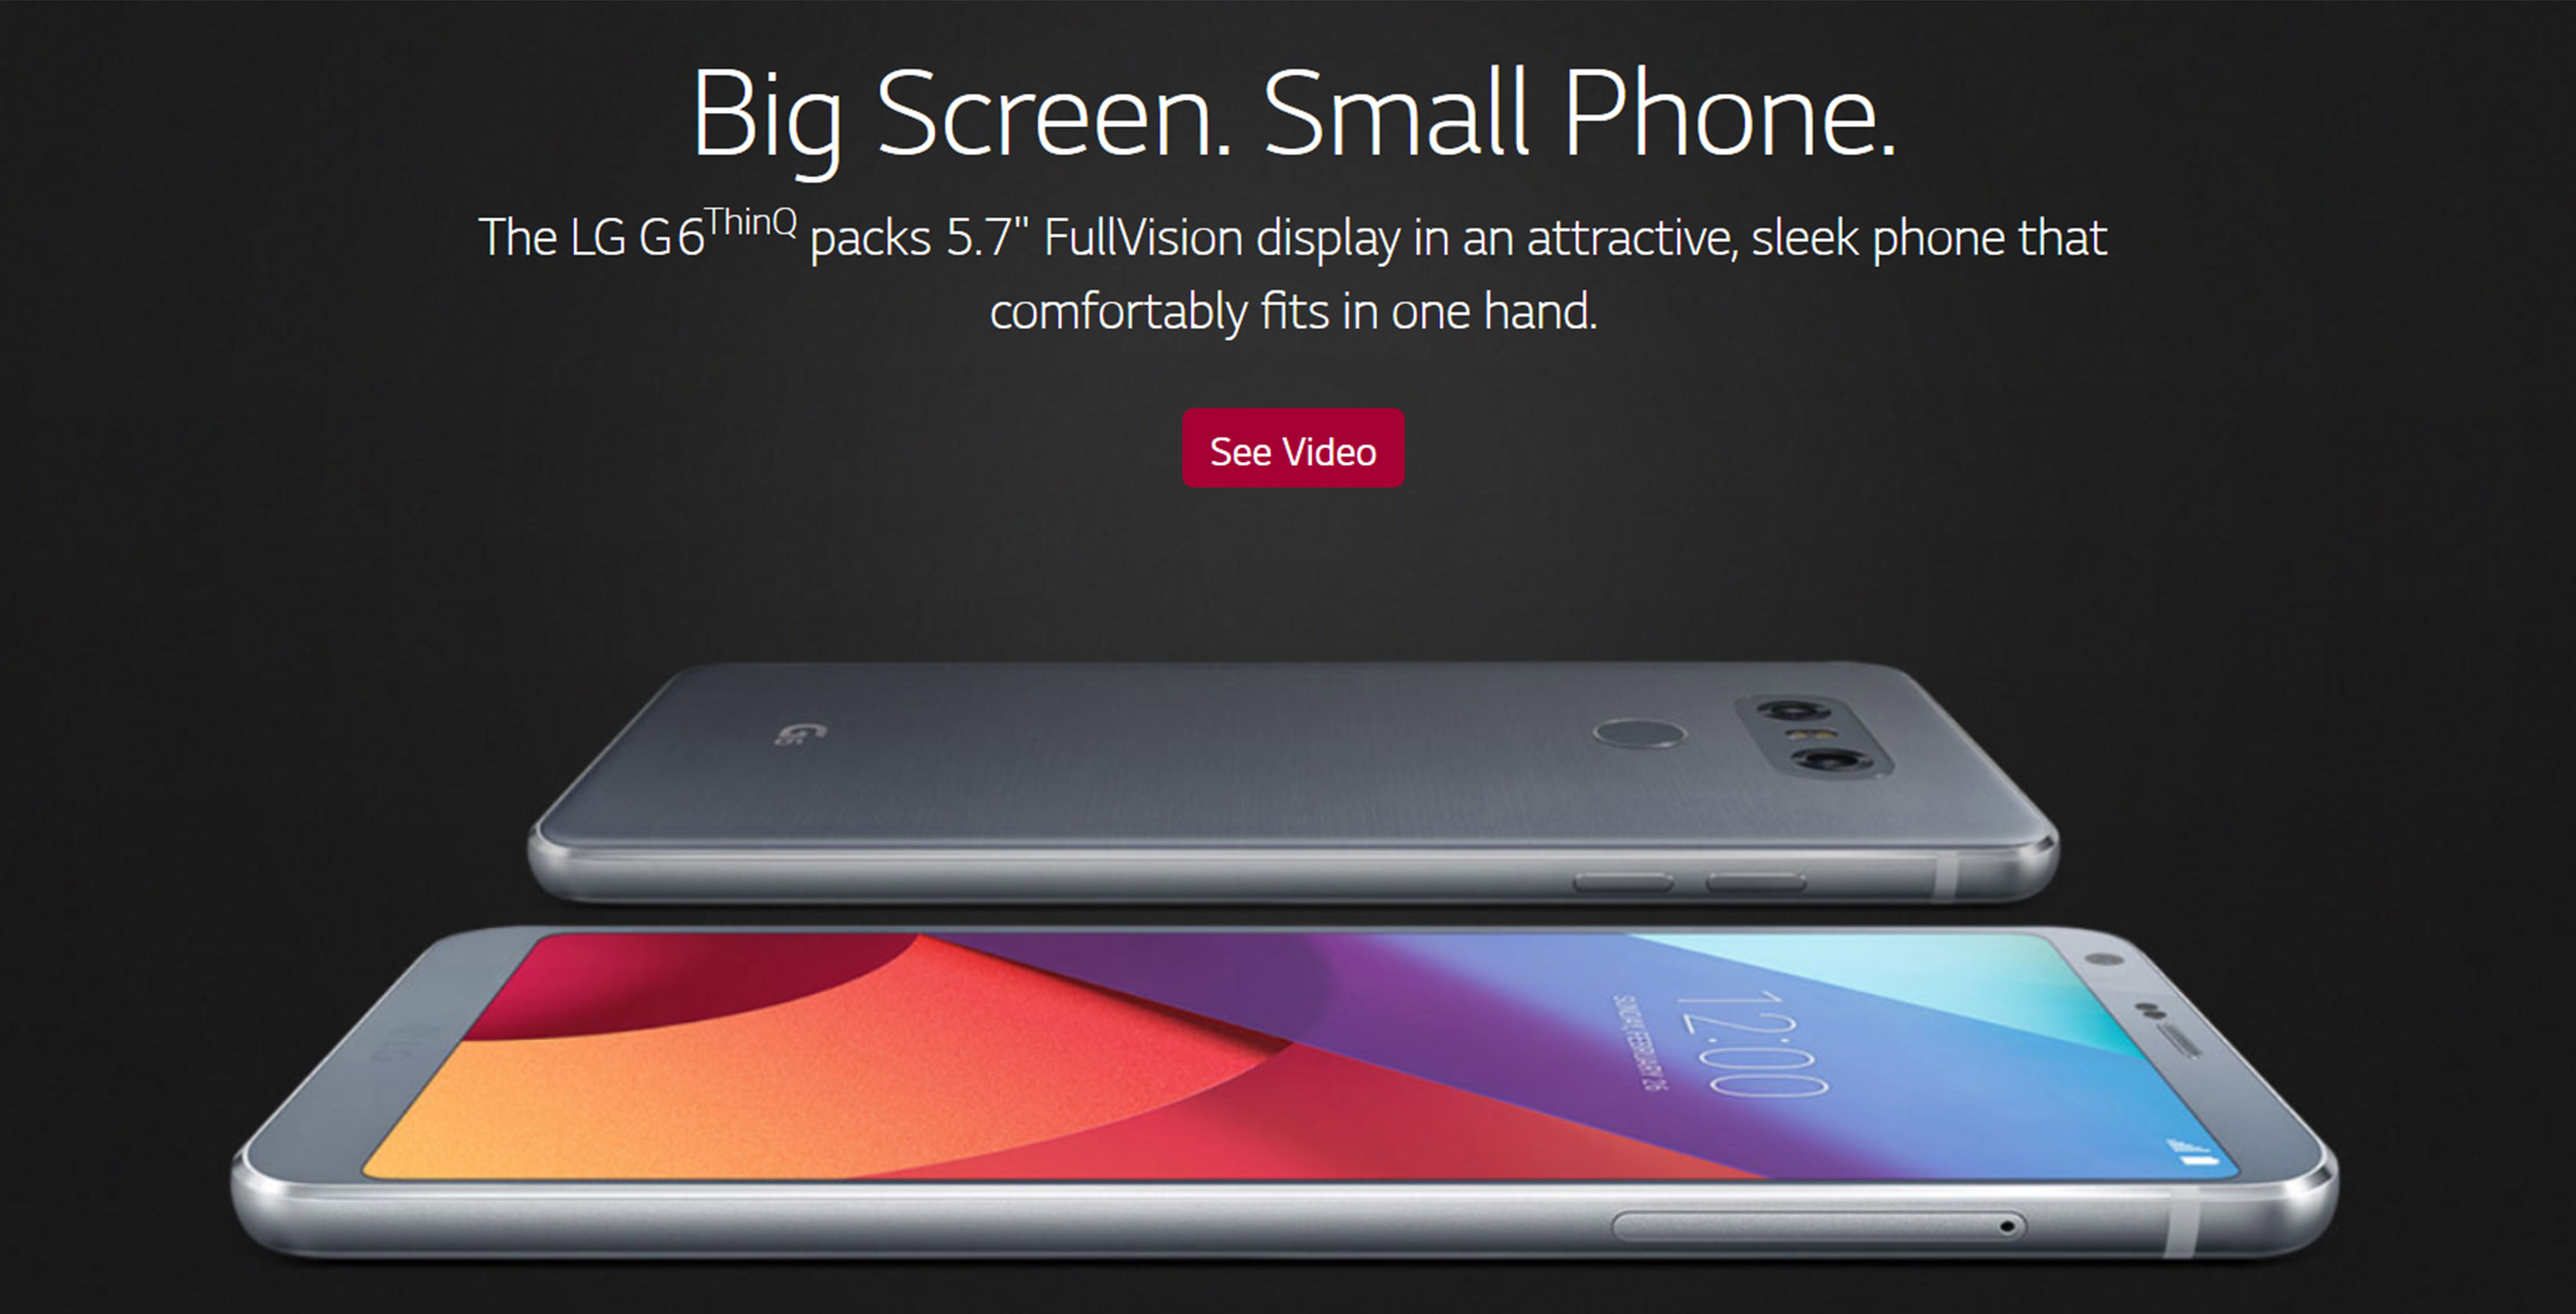 LG website showing the LG G6 ThinQ